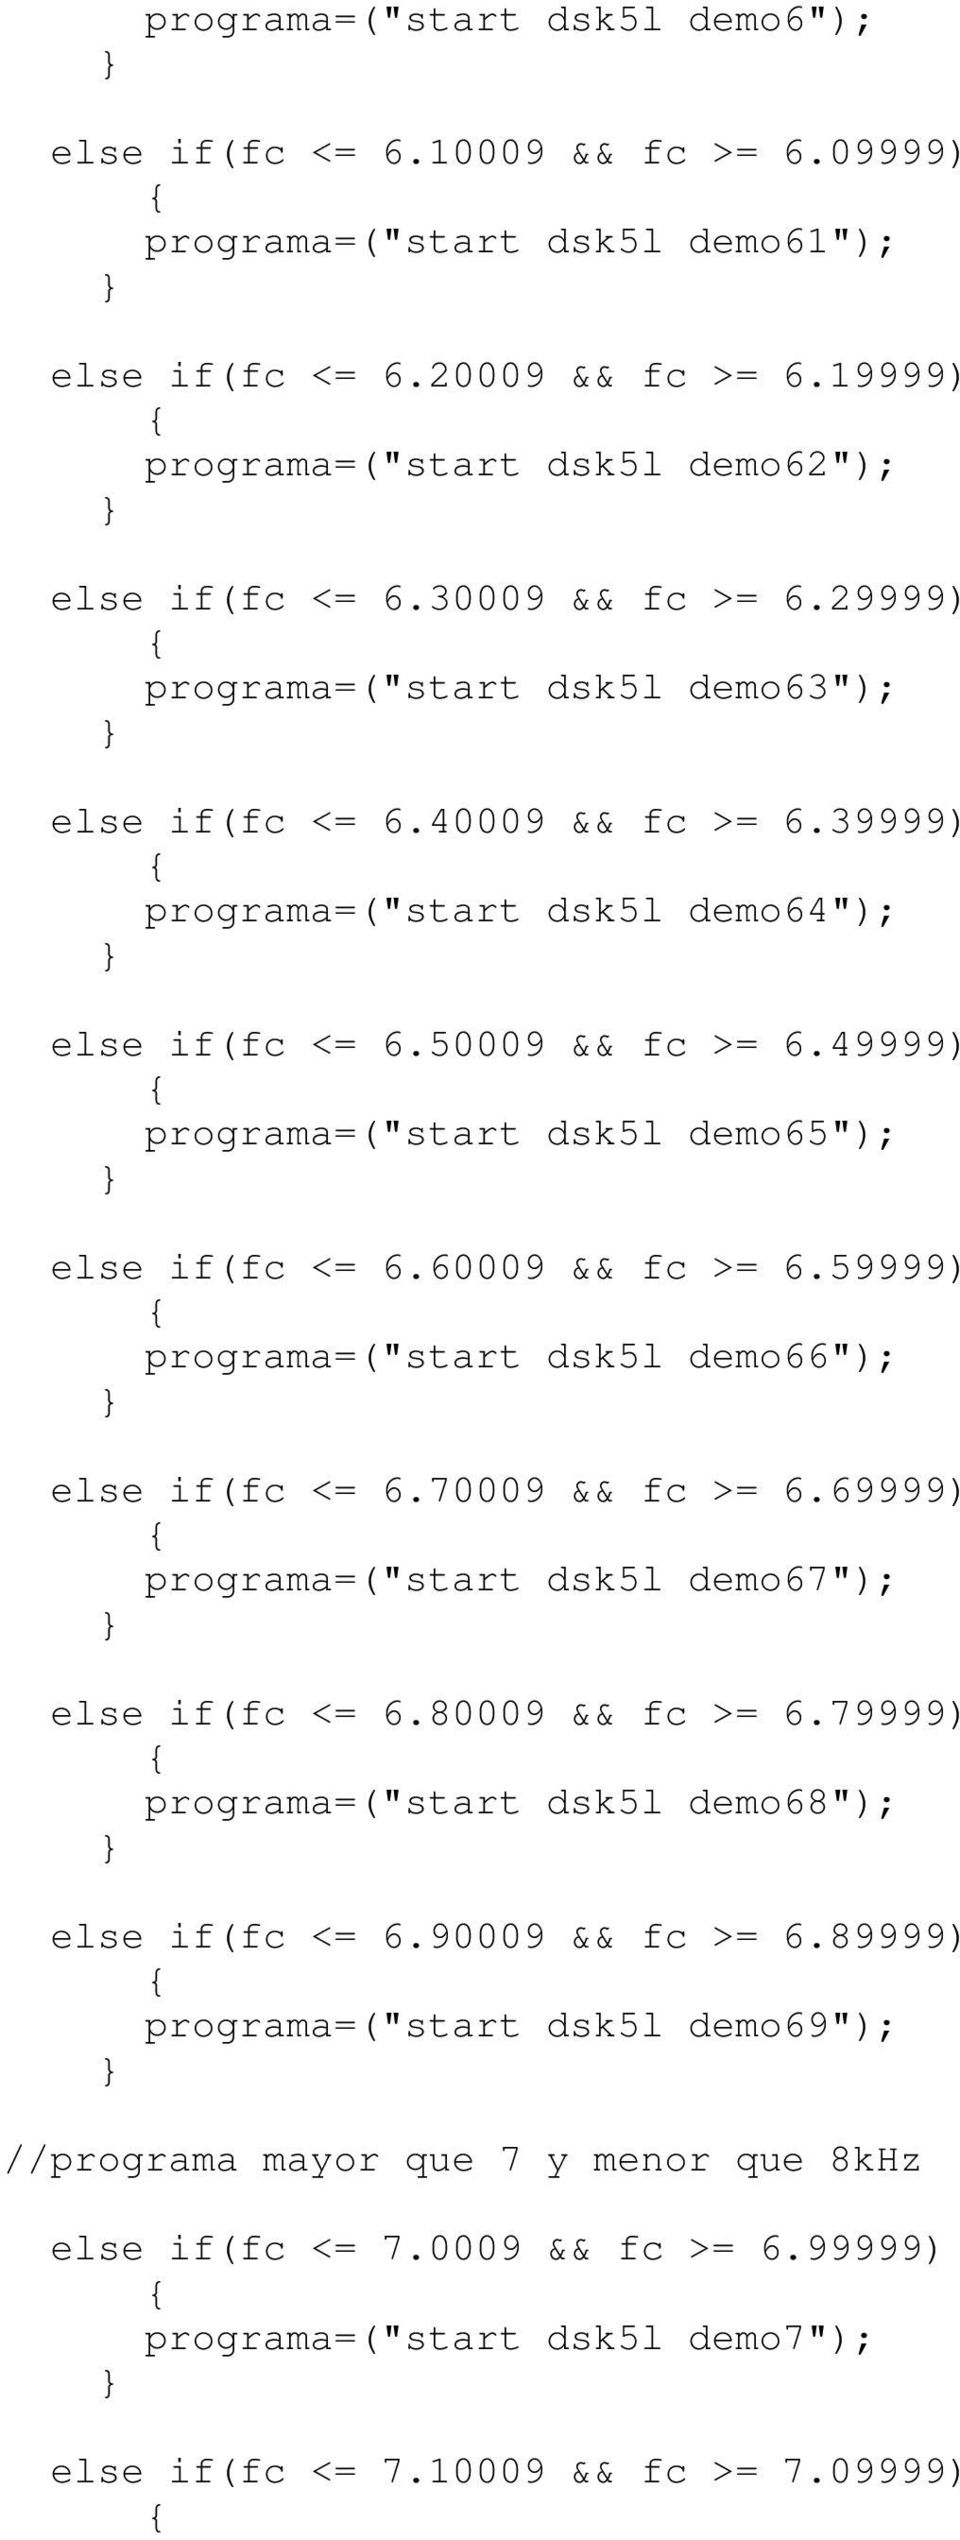 "49999) programa=(""start dsk5l demo65""); else if(fc <= 6.60009 && fc >= 6.59999) programa=(""start dsk5l demo66""); else if(fc <= 6.70009 && fc >= 6."